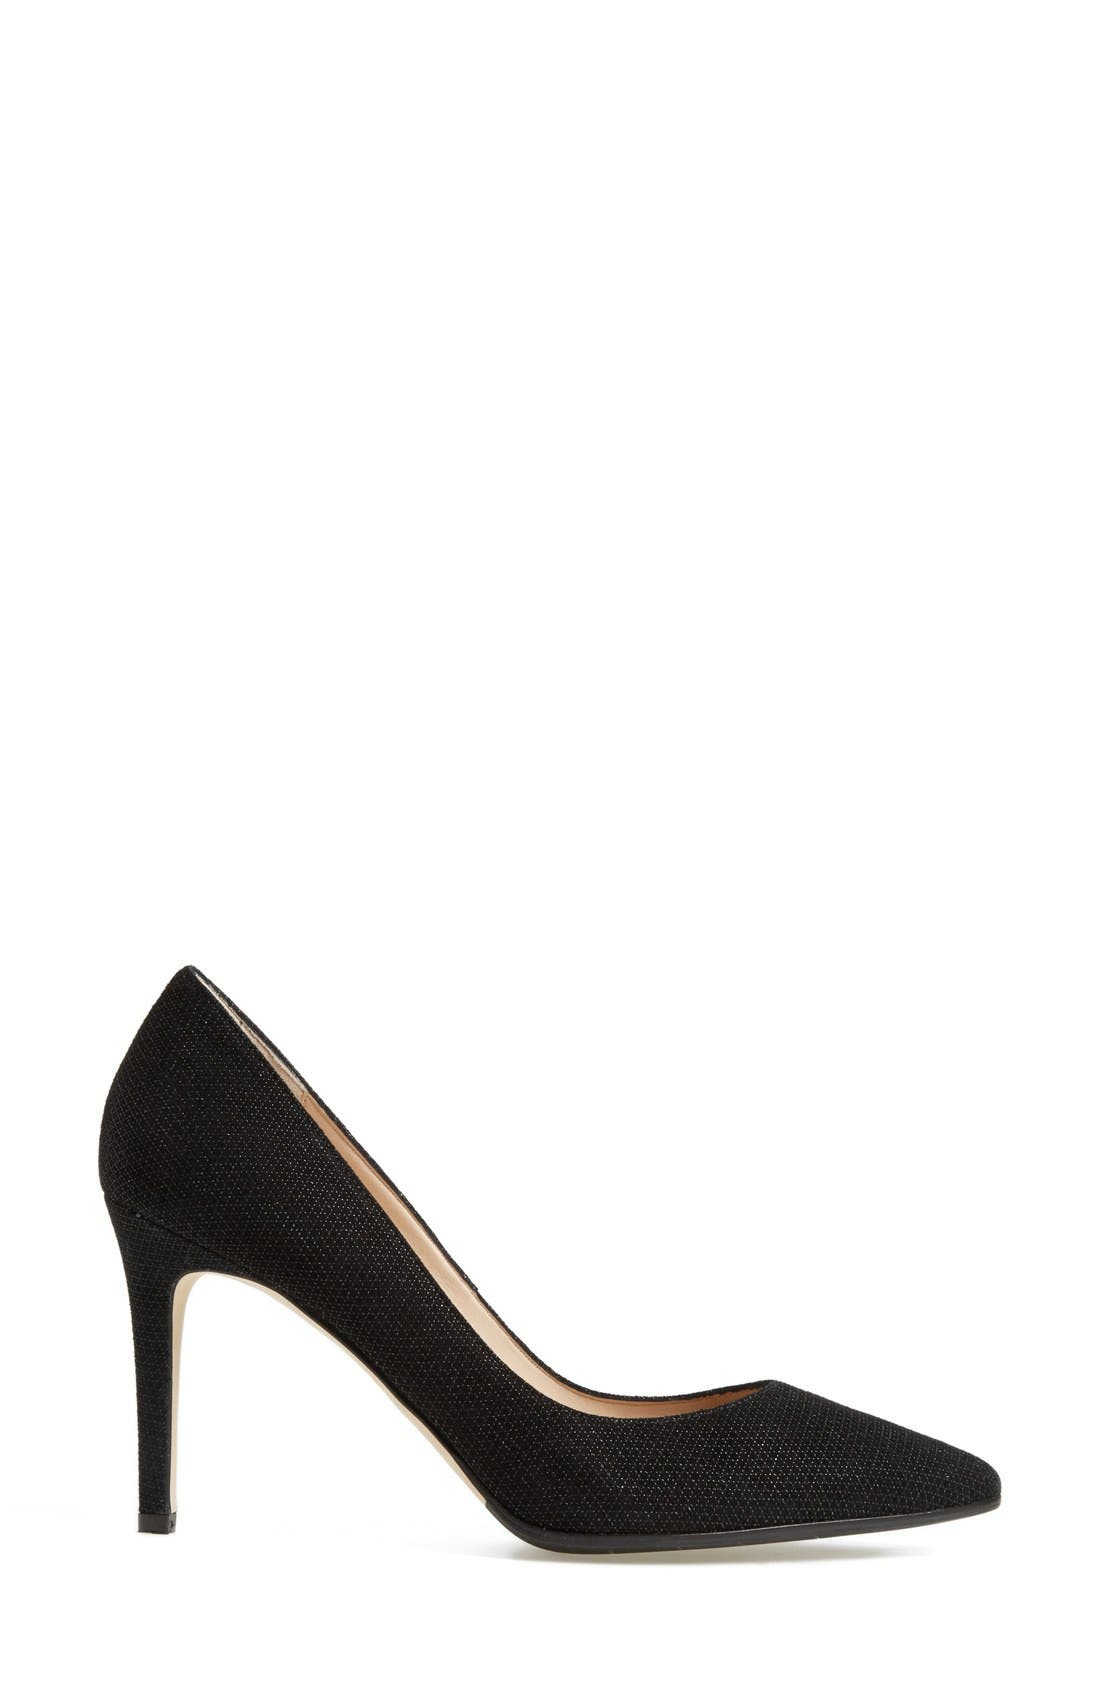 AQUATALIA, 'Harlee' Weatherproof Pointy Toe Pump, Alternate thumbnail 2, color, 001